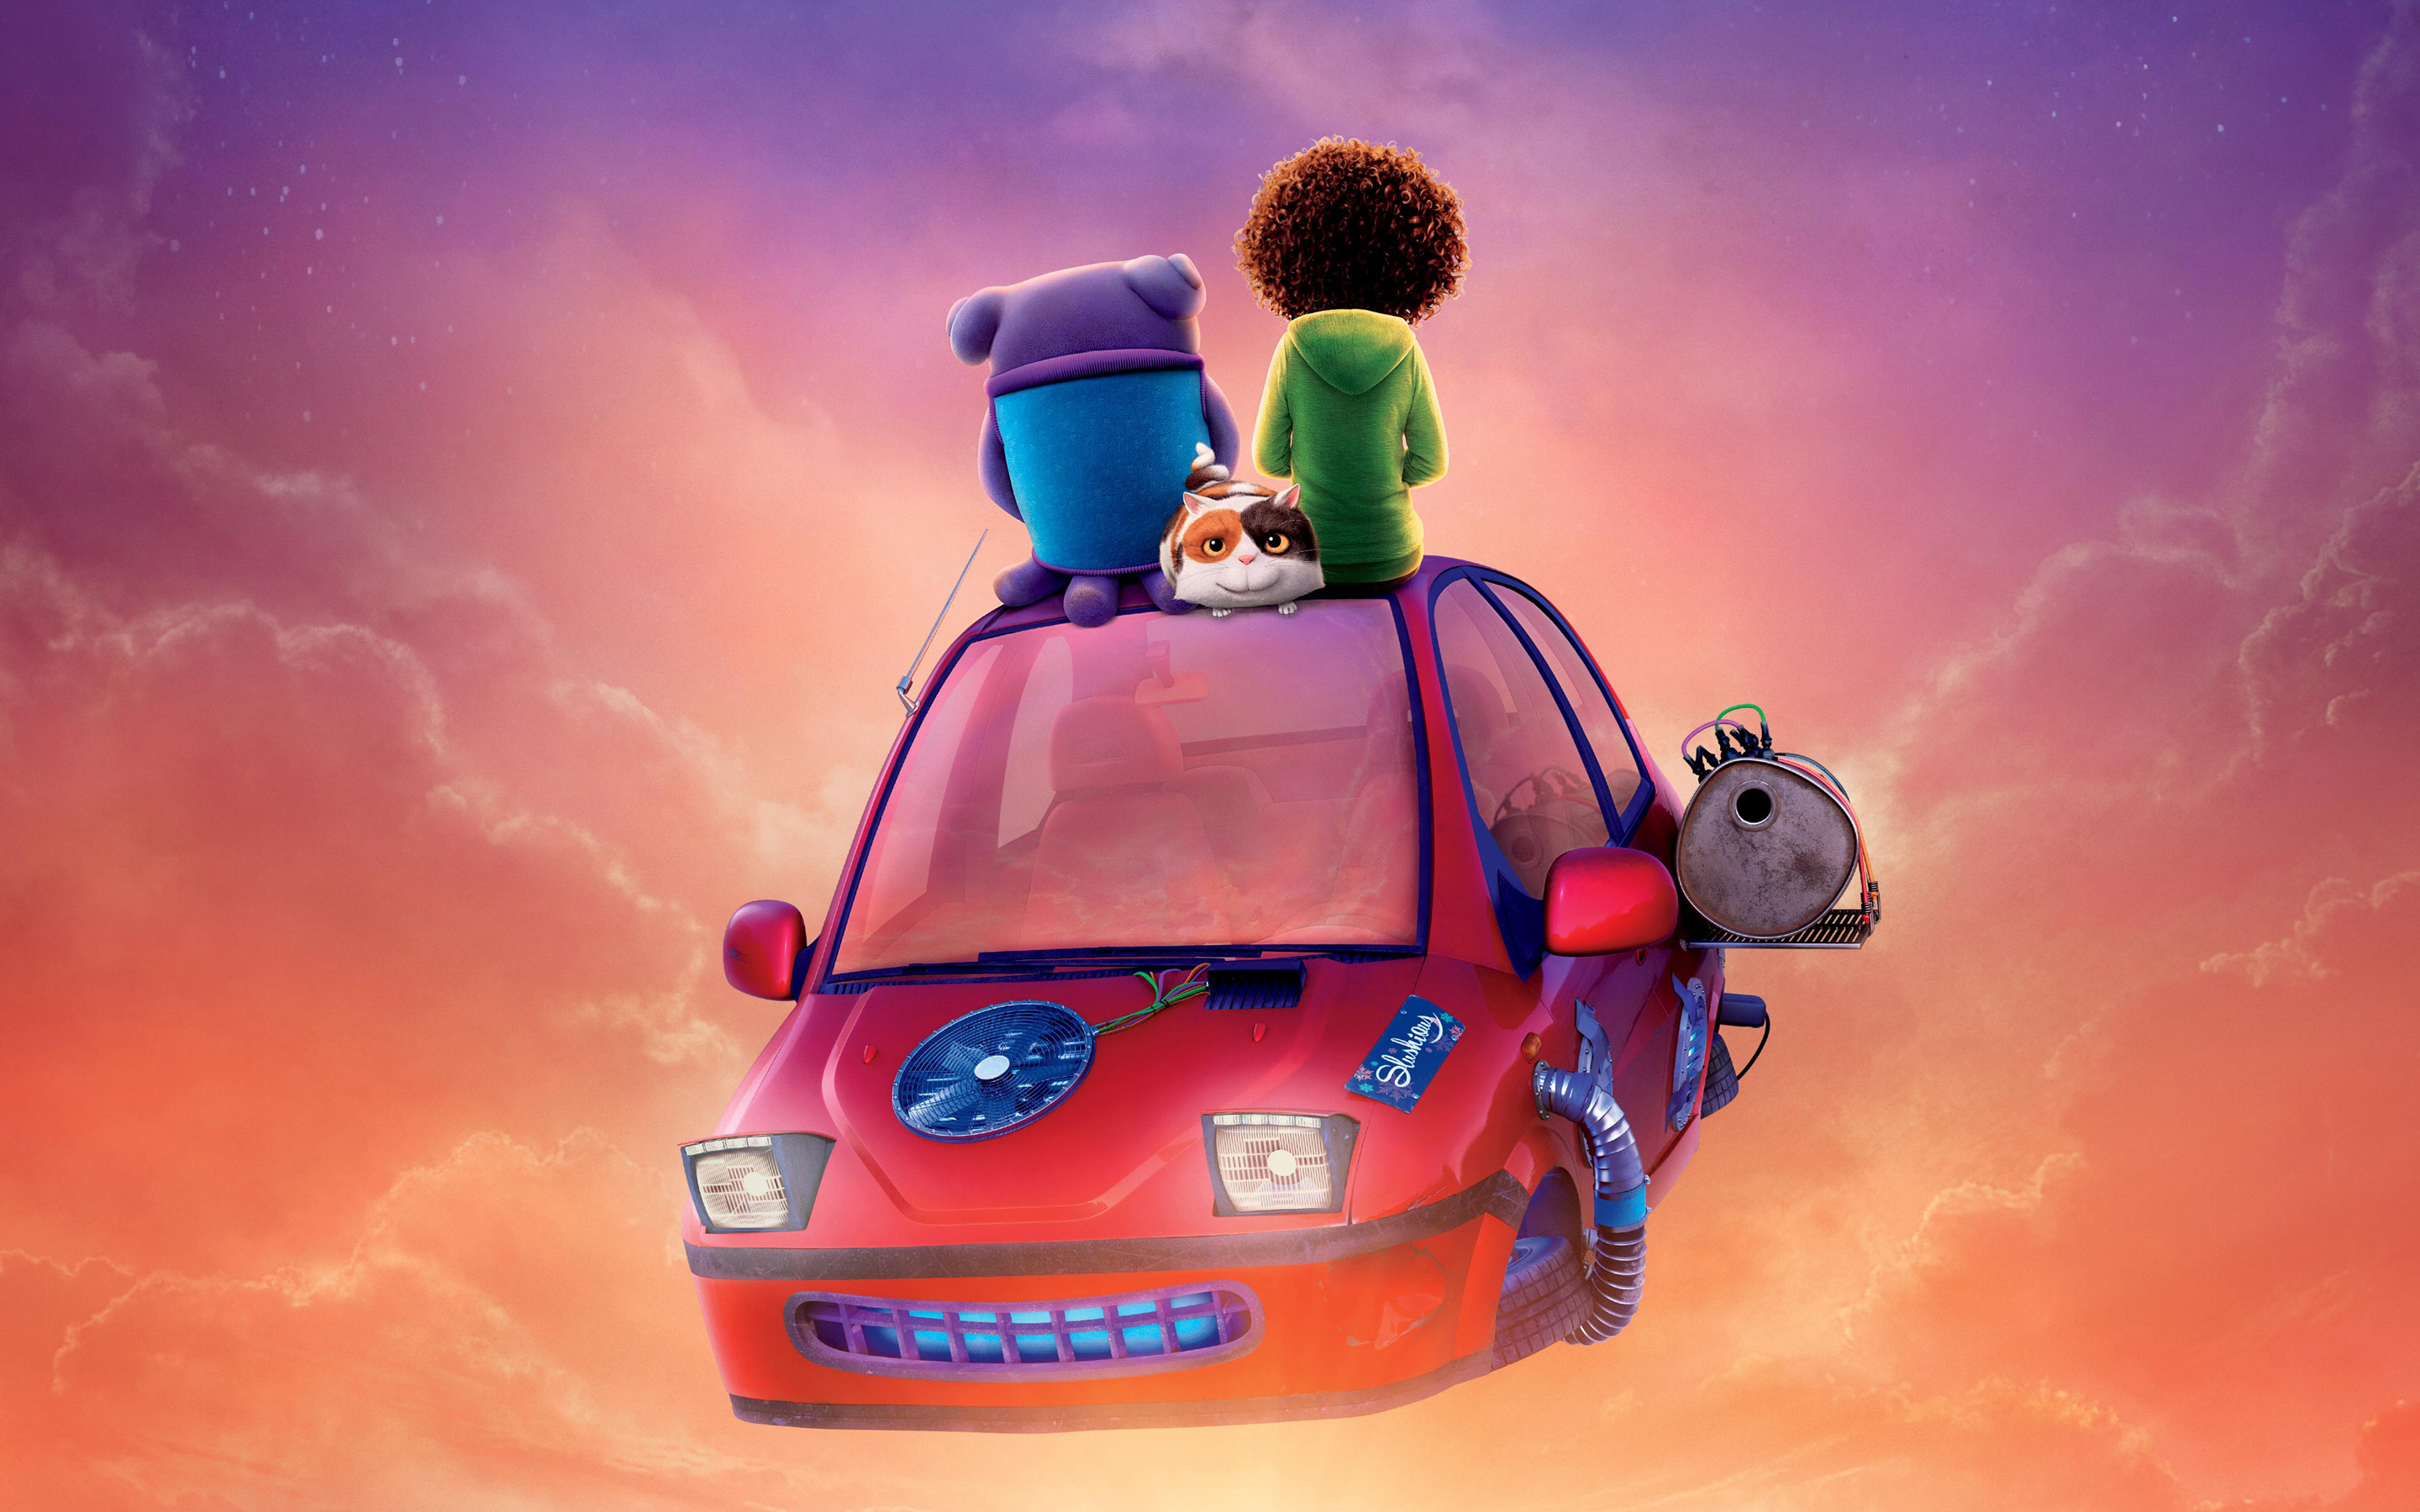 Home 2015 Movie Wallpapers HD Wallpapers 2880x1800